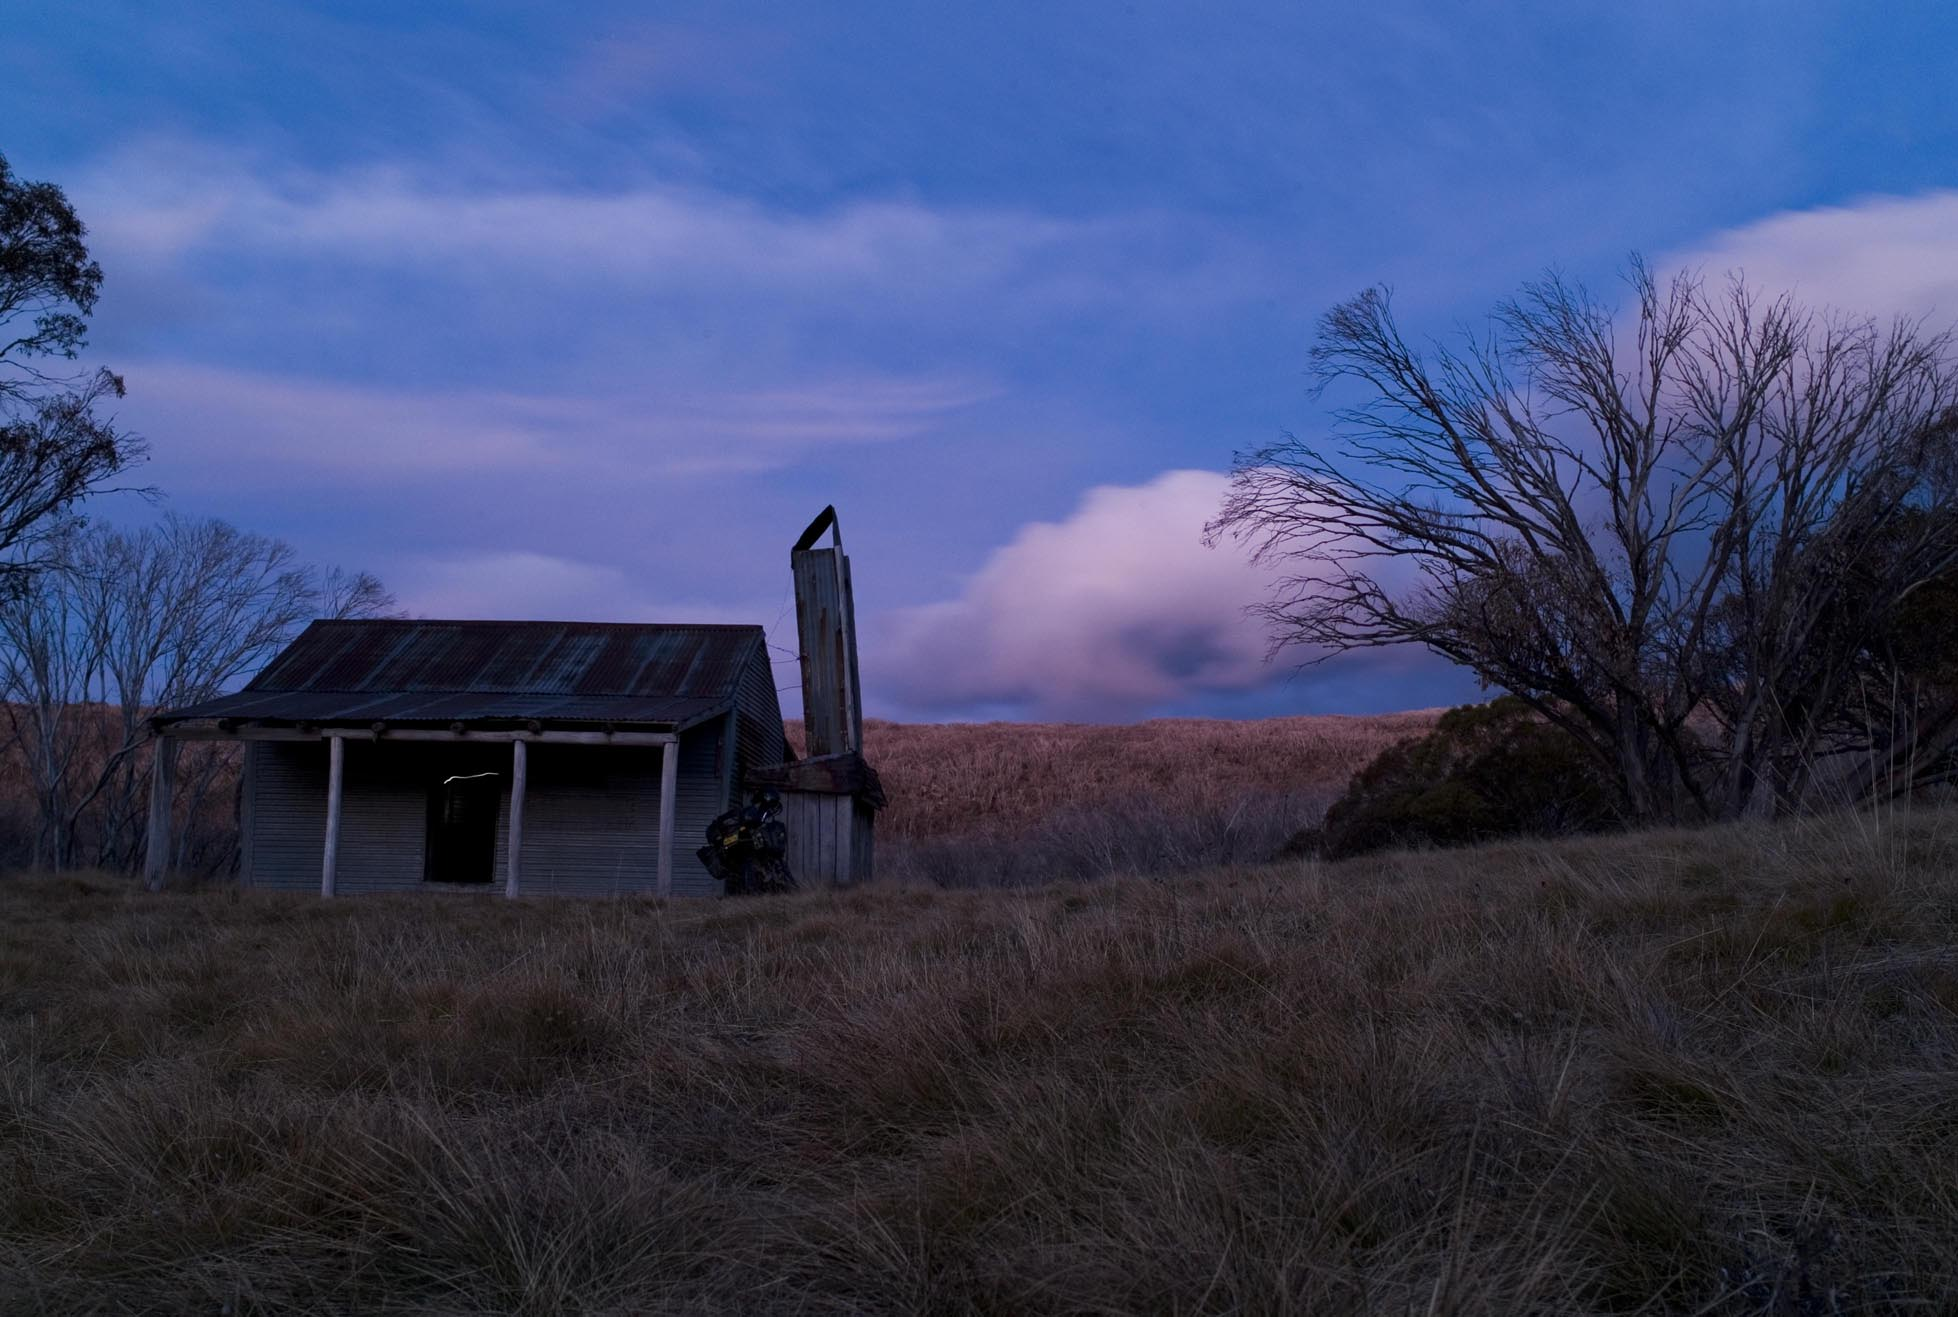 Bradley's Hut at dusk.